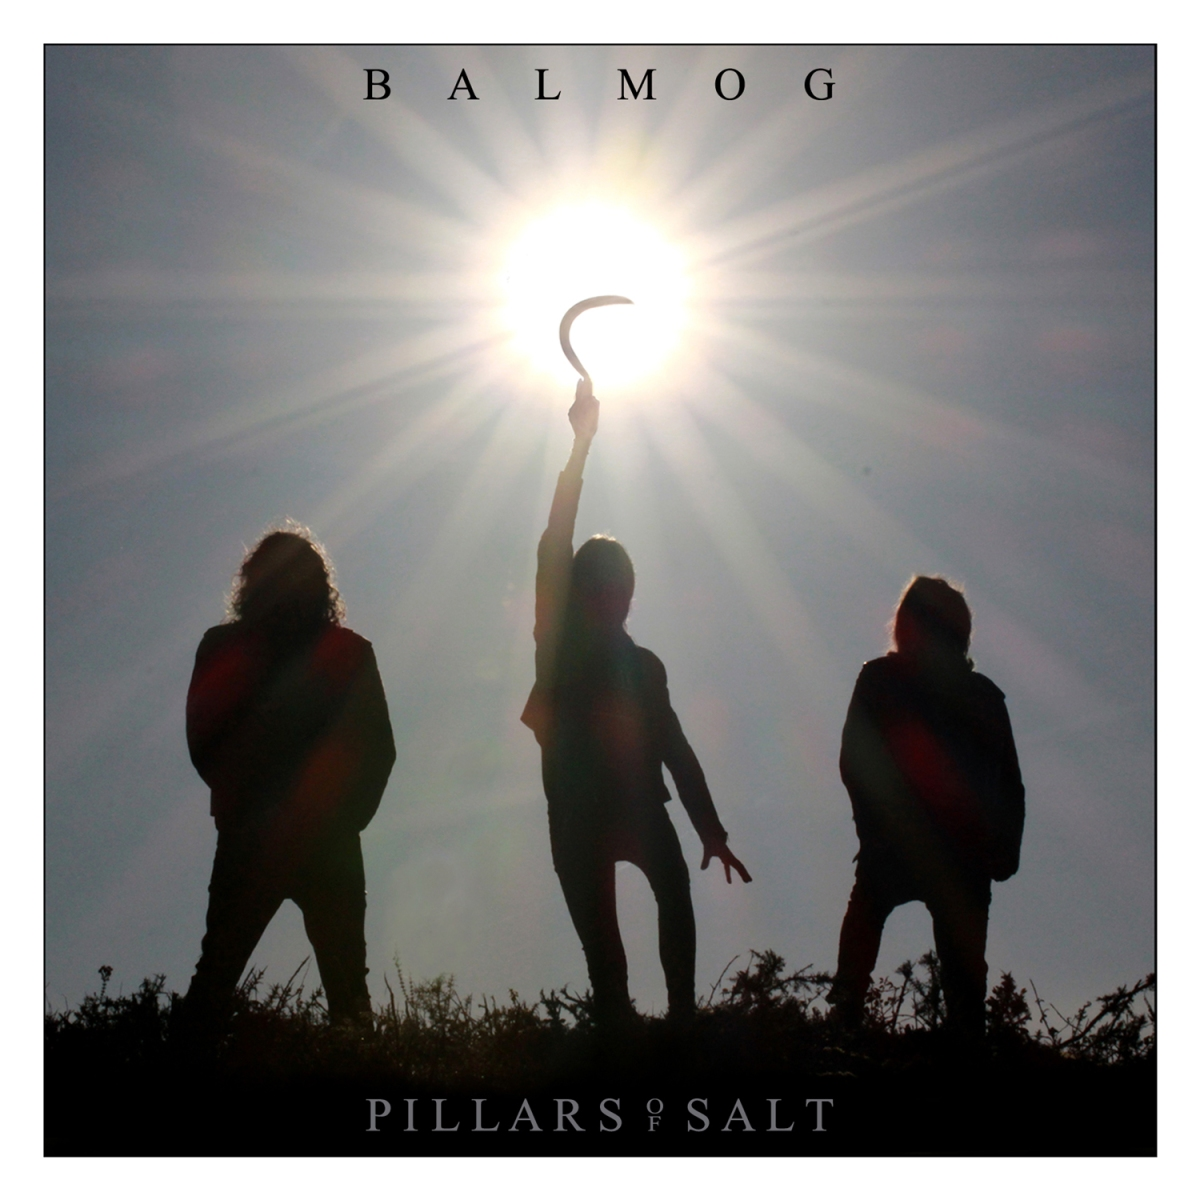 Balmog⛓Pillars Of Salt | review